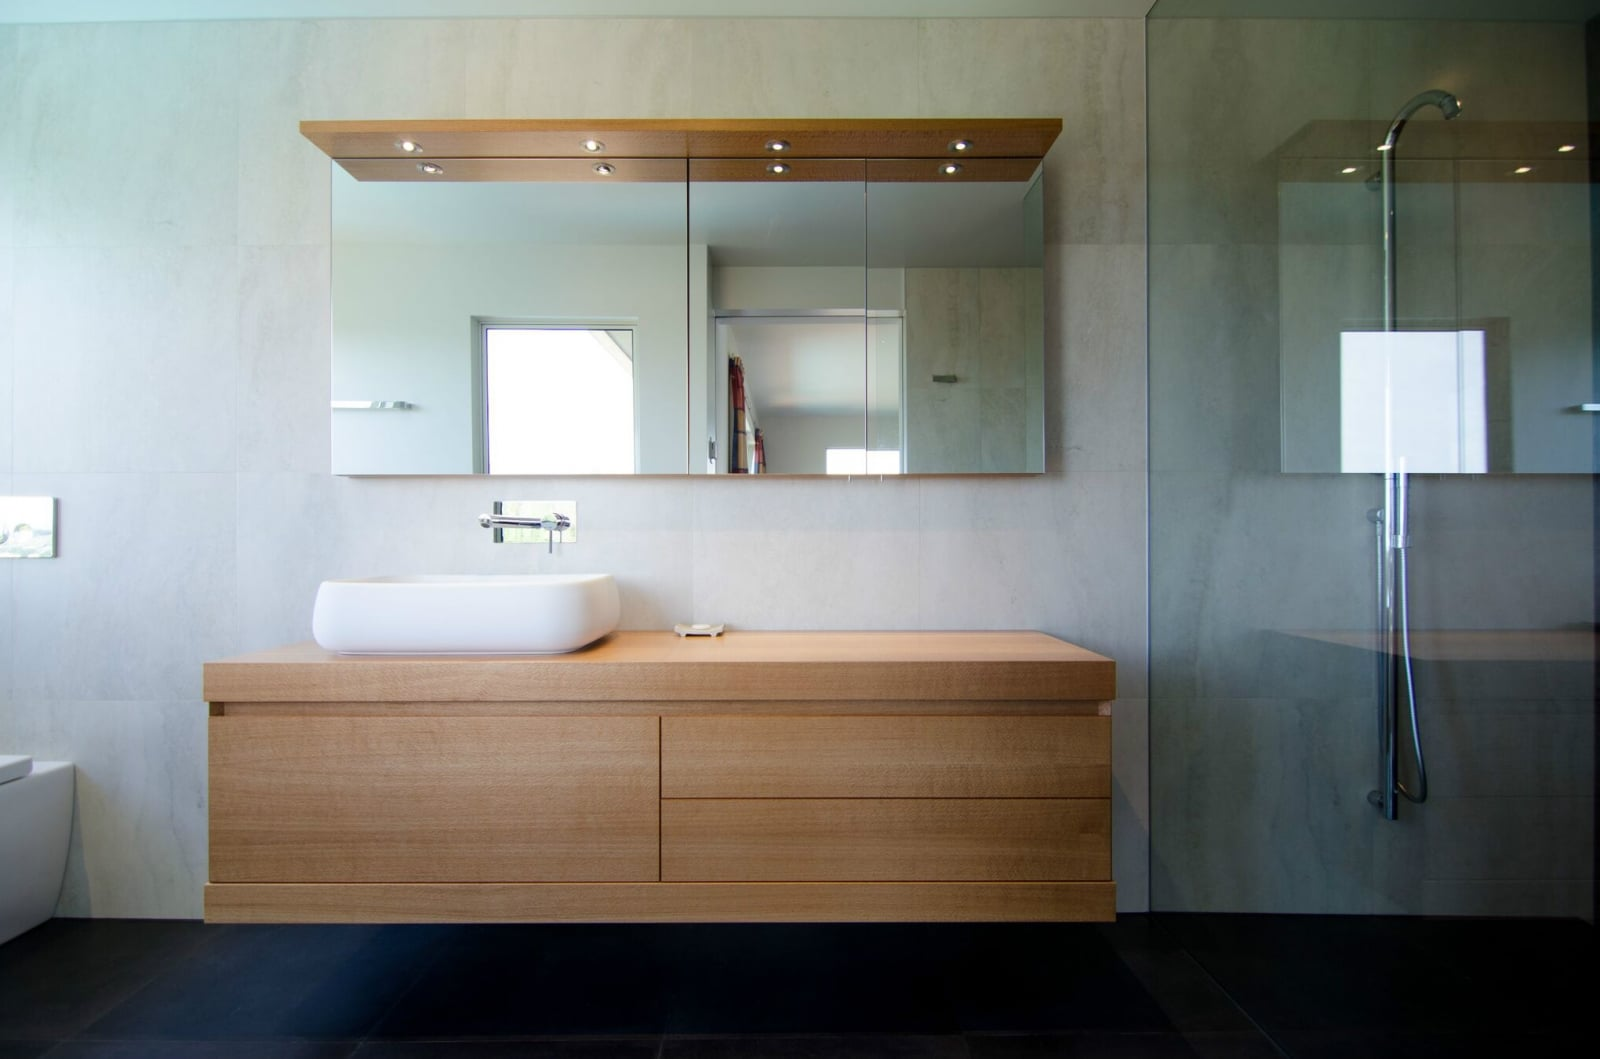 Bathroom Design Nelson Nz : Our interior and bathroom designs surfacedesign nelson